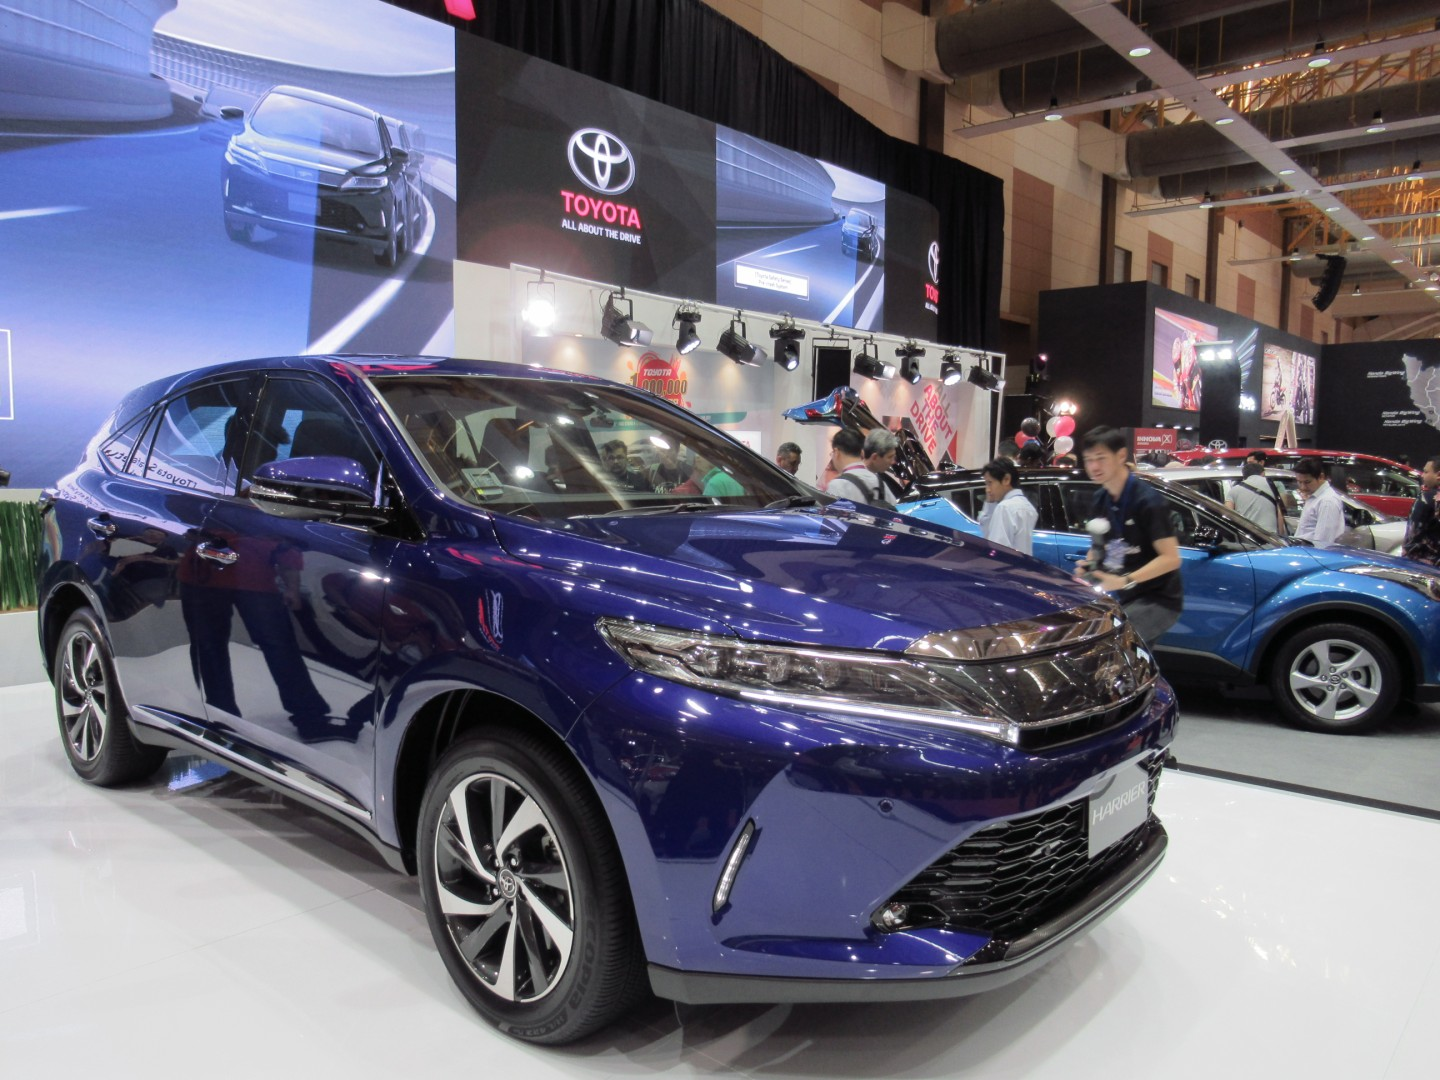 motoring-malaysia: umw toyota starts delivery of the all-new 2018